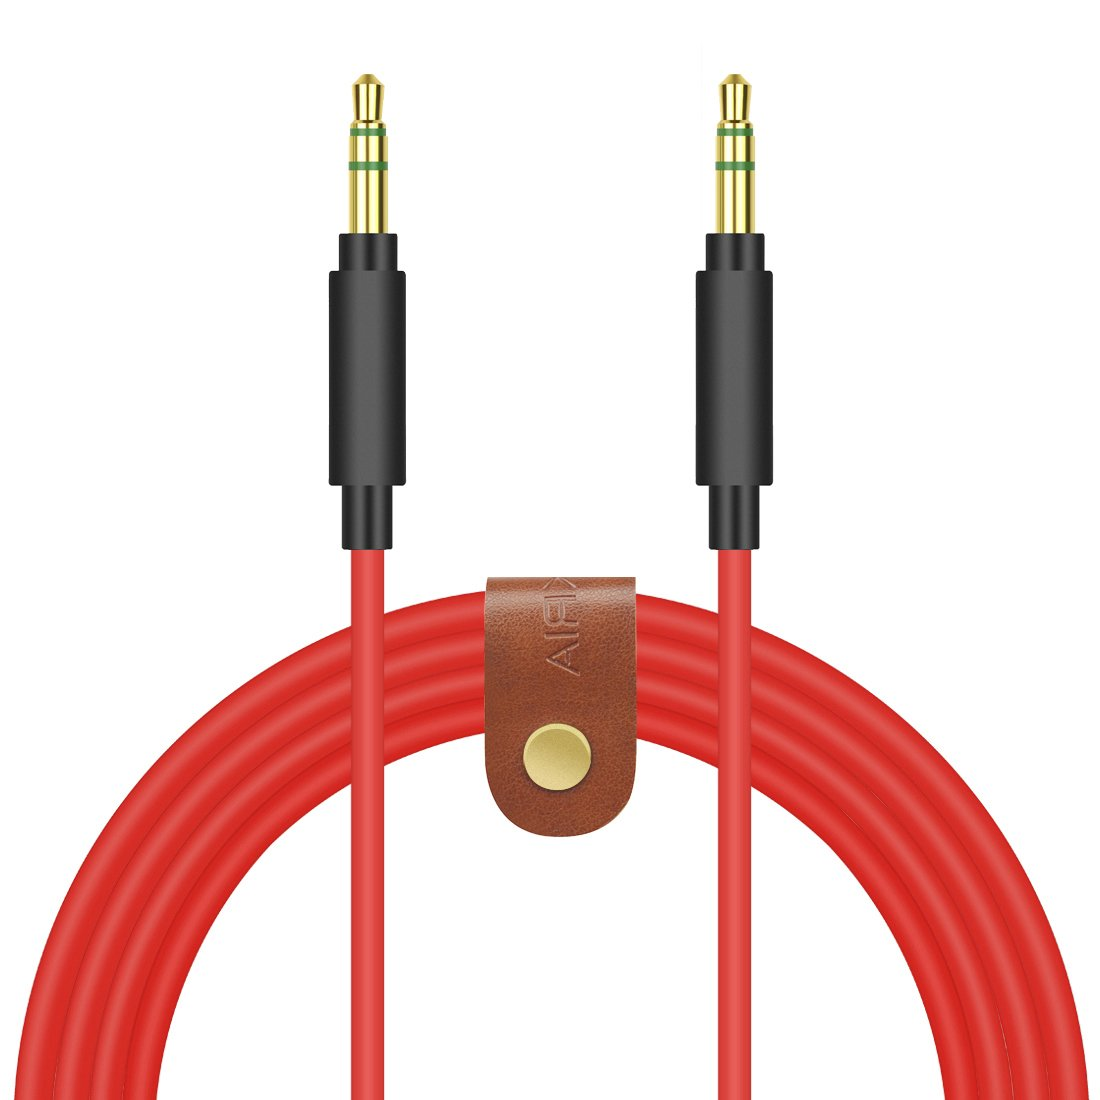 Geekria QucikFit Upgrade Cable for Sony MDR-1000X, MDR-100AAP, MDR-100ABN, MDR-XB950BT, XB650BT, XB750BT, MDR-1A and more / Tangle-Free Premium Headphone Replacement Audio Cord (3.5mm,Red 5ft) EJX29-35